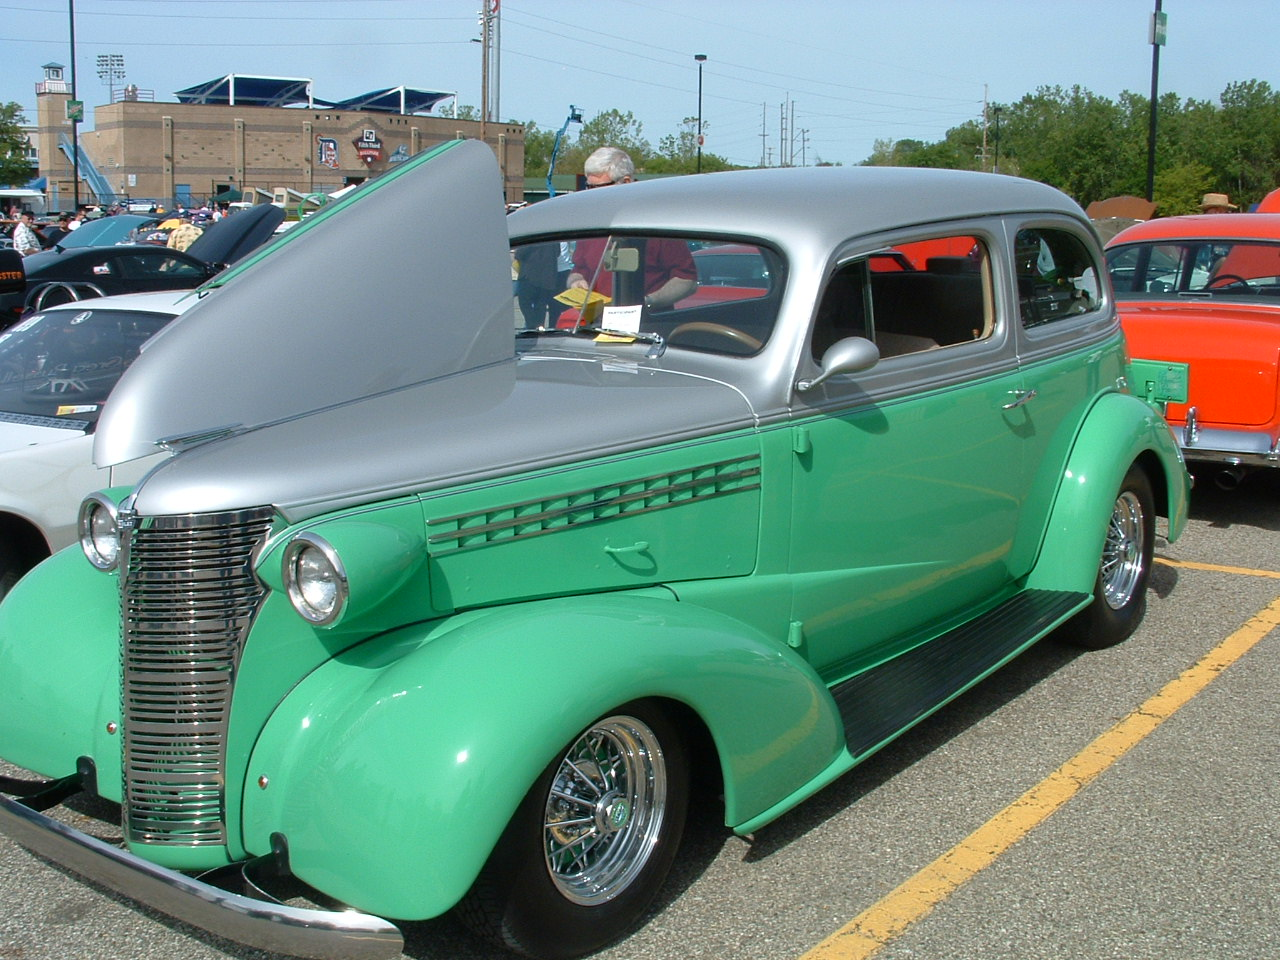 This is a 1939 Chevy 2dr